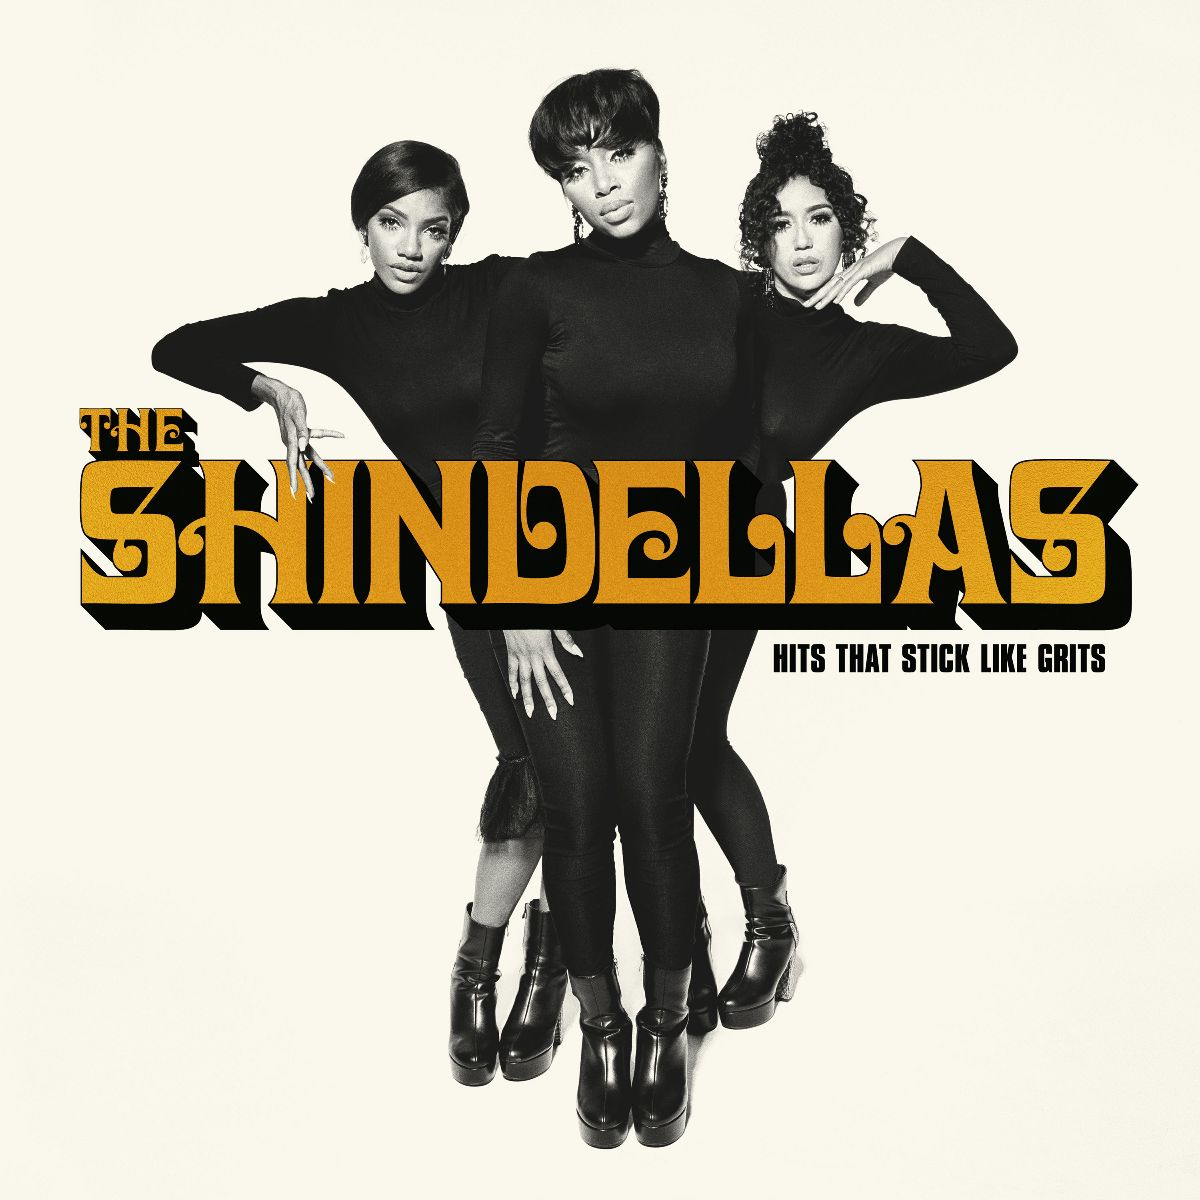 The Shindellas Hits That Stick Like Grits